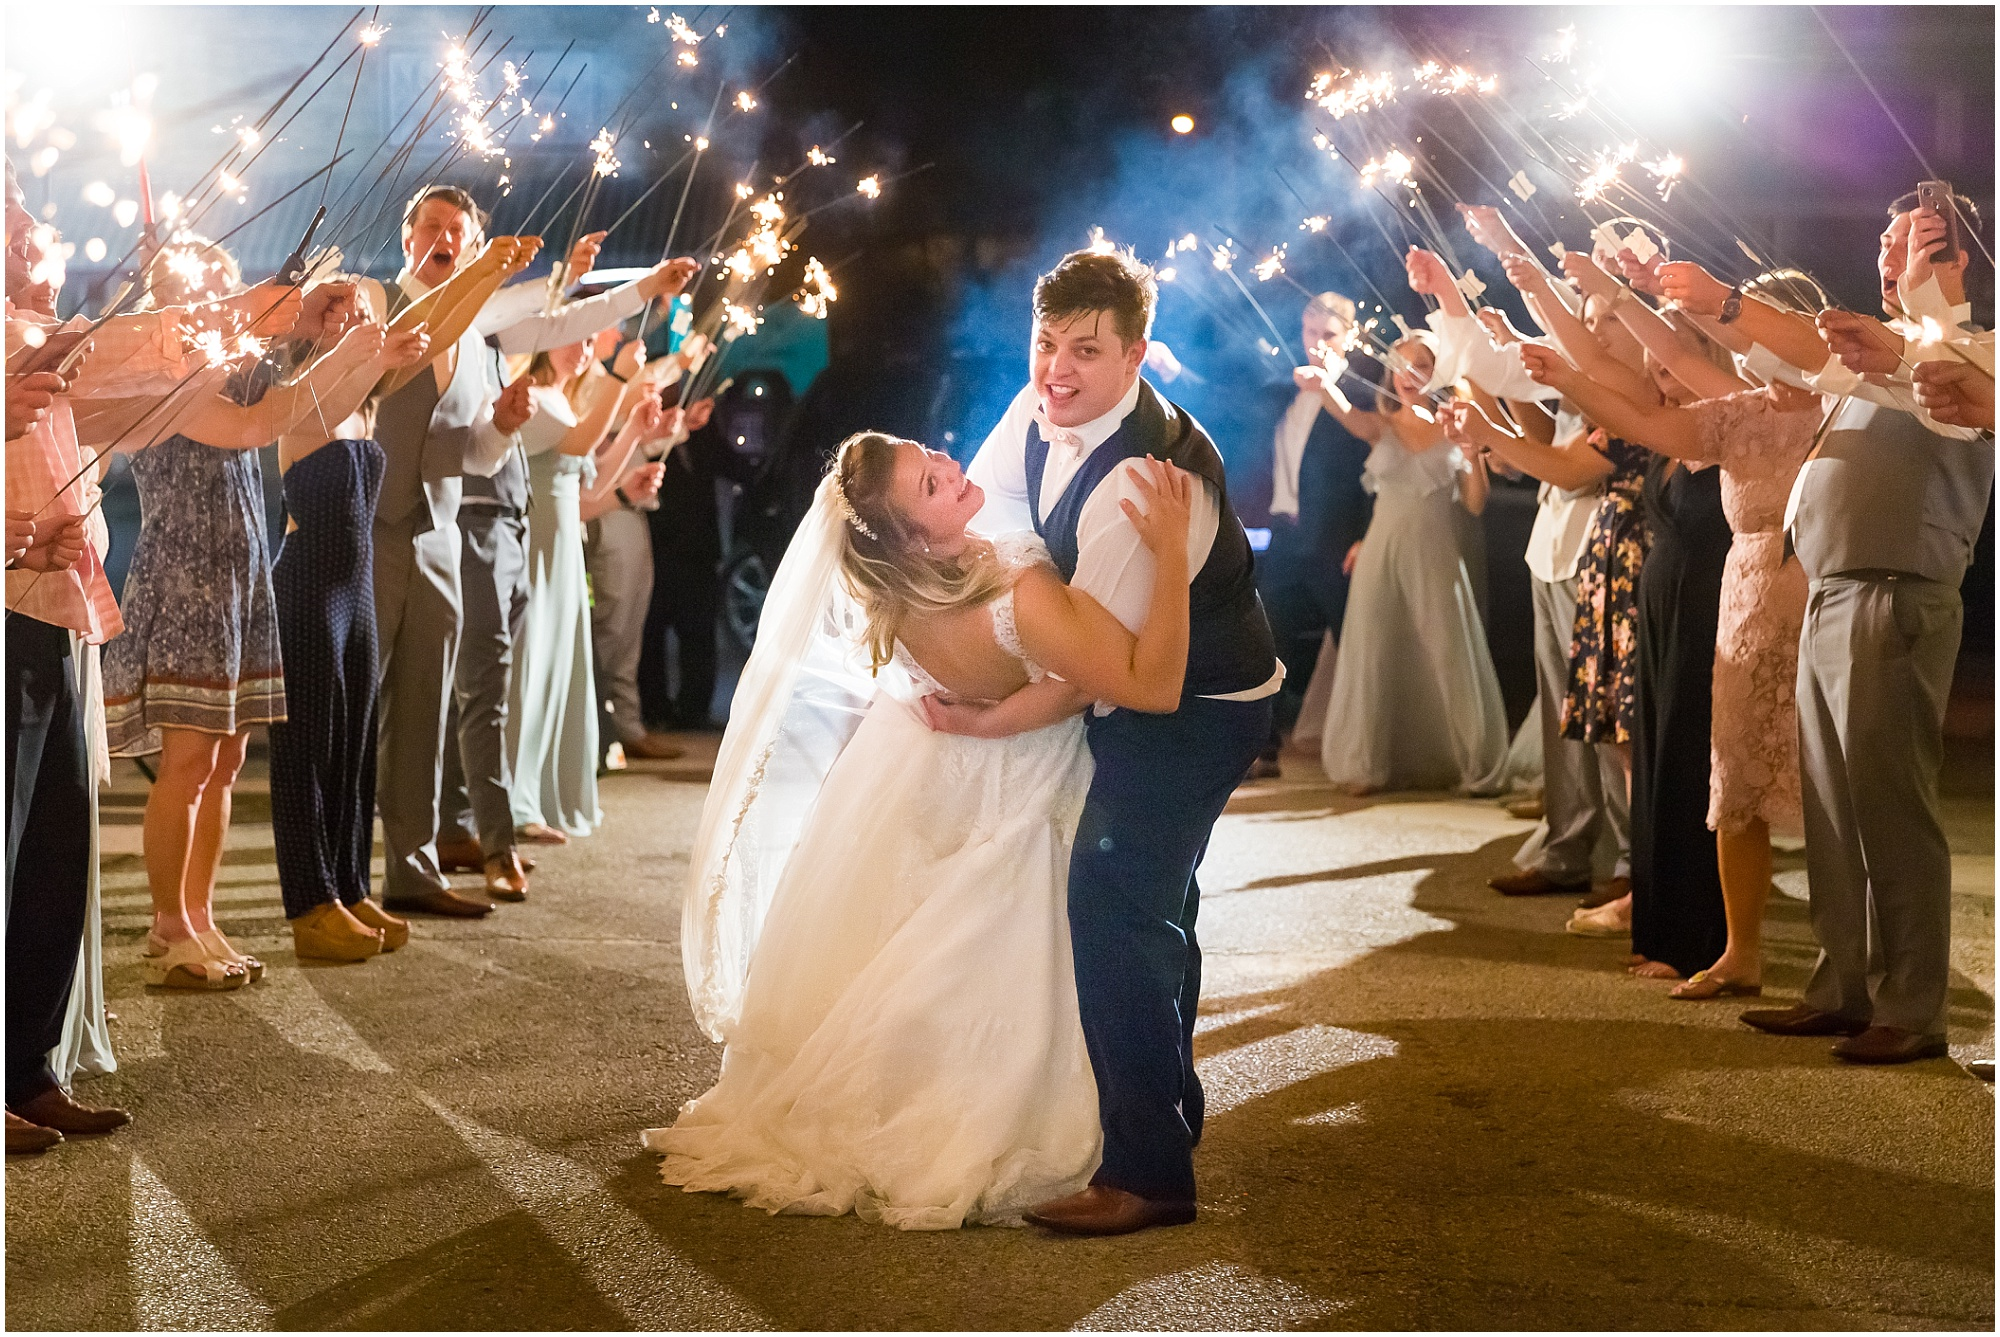 A groom dips his bride as they walk down a tunnel of sparklers as they leave their wedding - Jason & Melaina Photography - www.jasonandmelaina.com